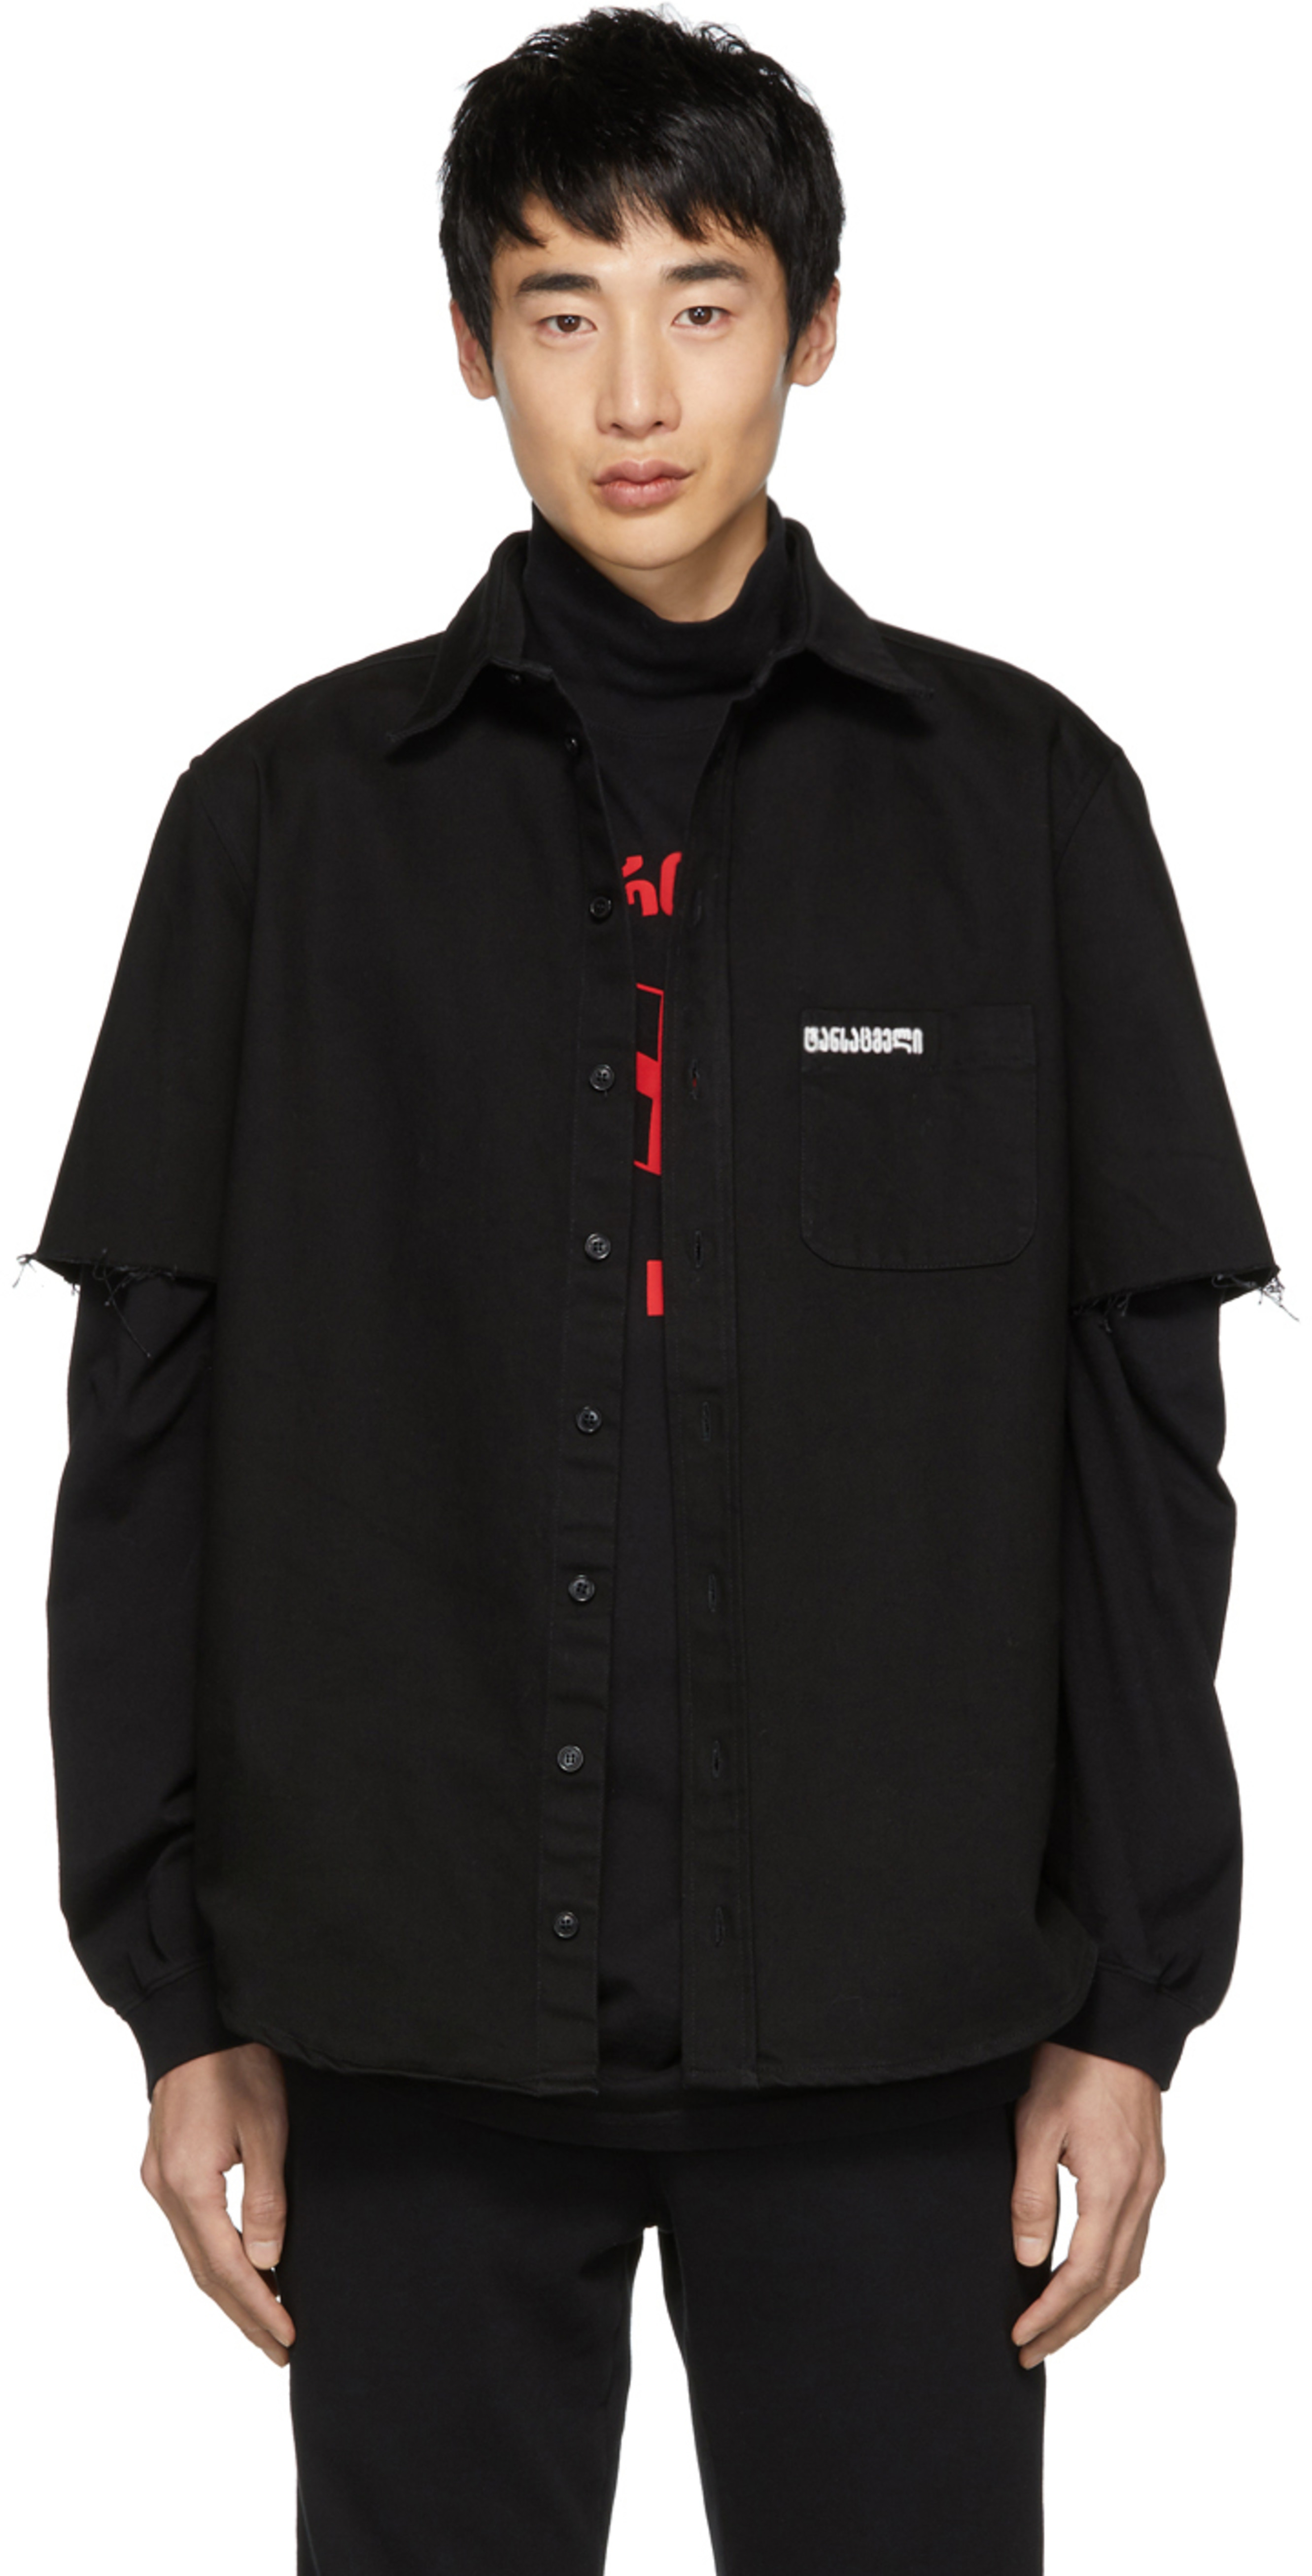 0c81a7c1b Vetements for Men SS19 Collection